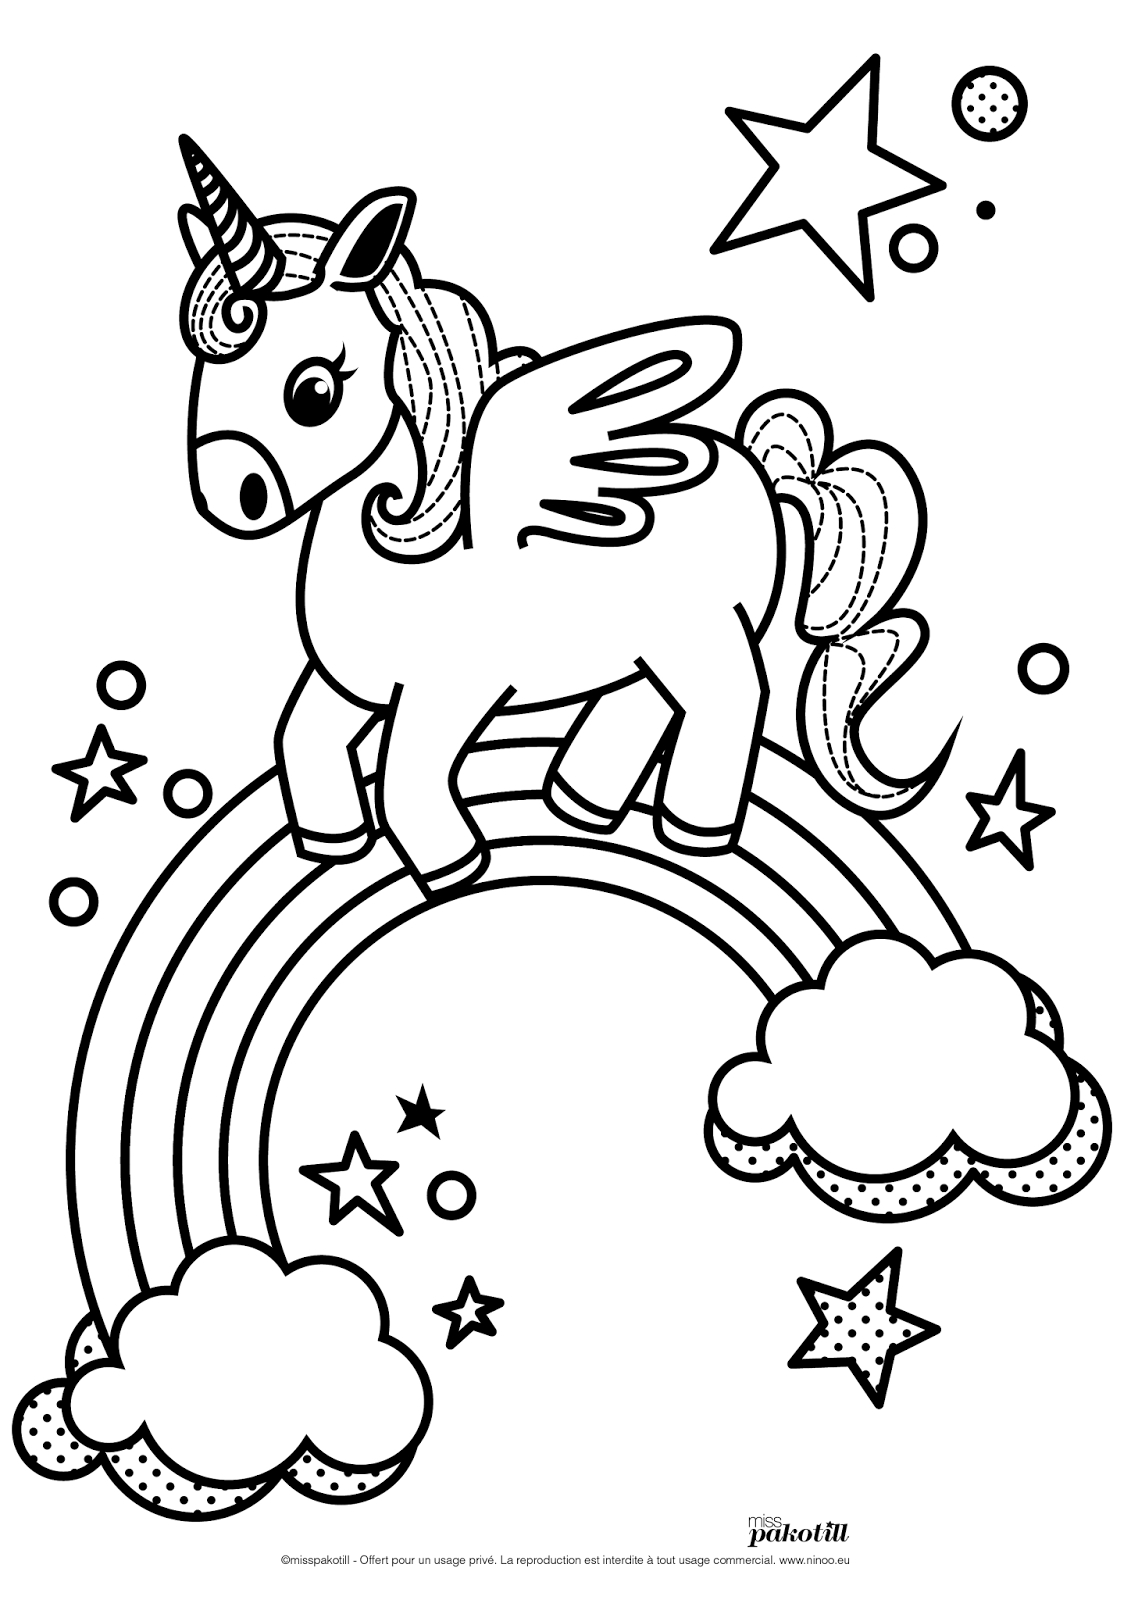 Miss-Pakotill-Illustration-Coloriage-Association-Ninoo destiné Coloriage Licorne Kawaii Dessin Kawaii A Imprimer